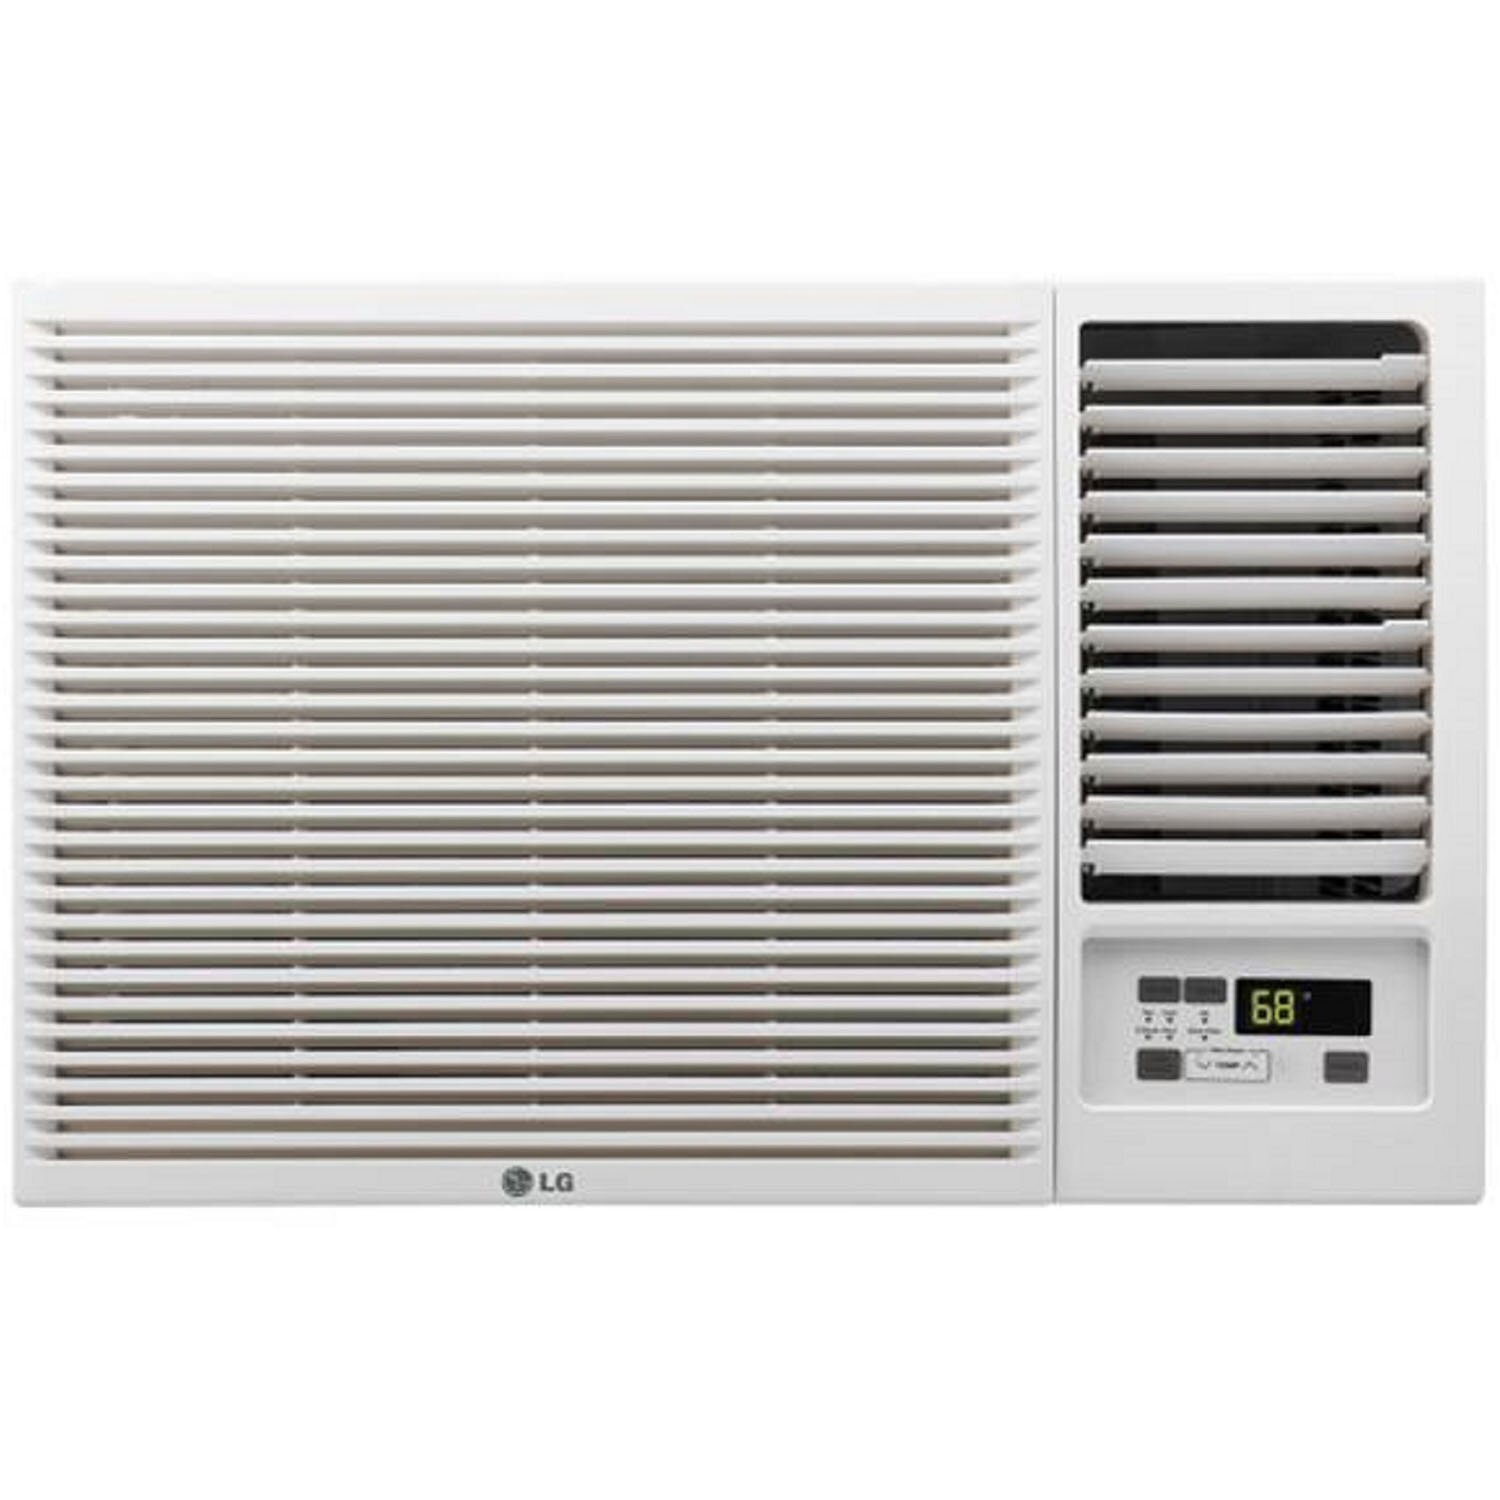 Heating & Cooling Window Air Conditioners LG SKU: UGS1419 #595149